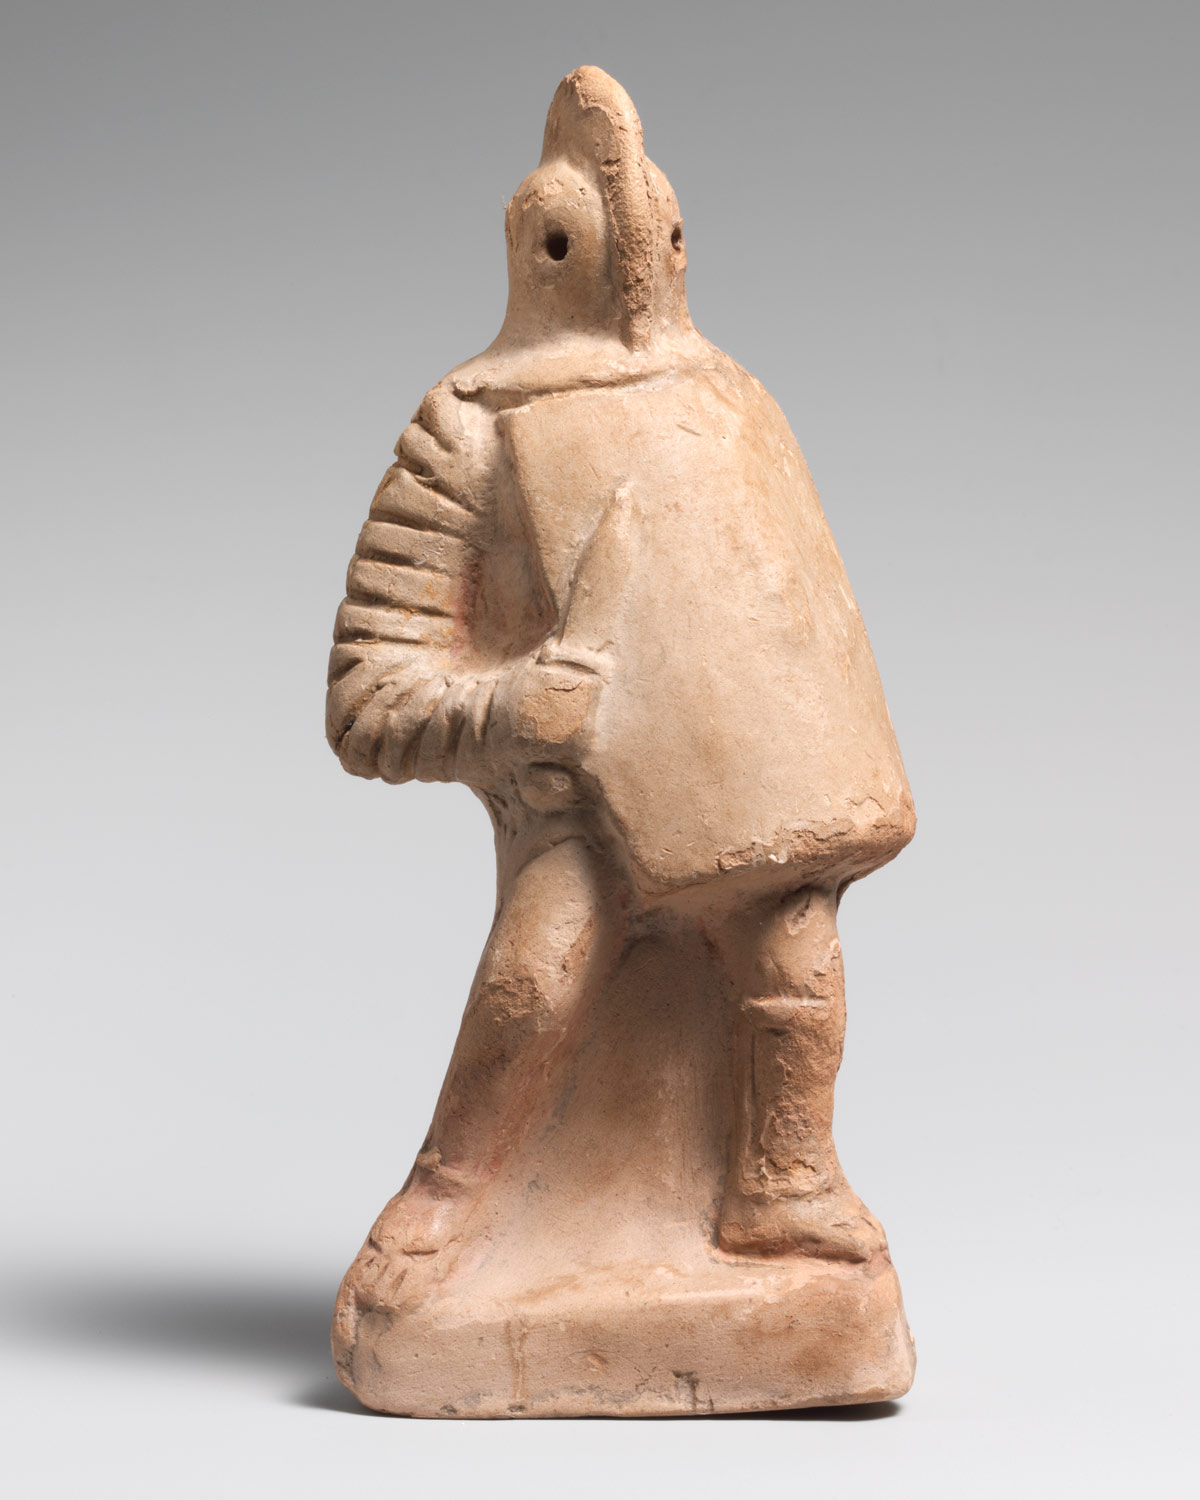 Statuette of a gladiator